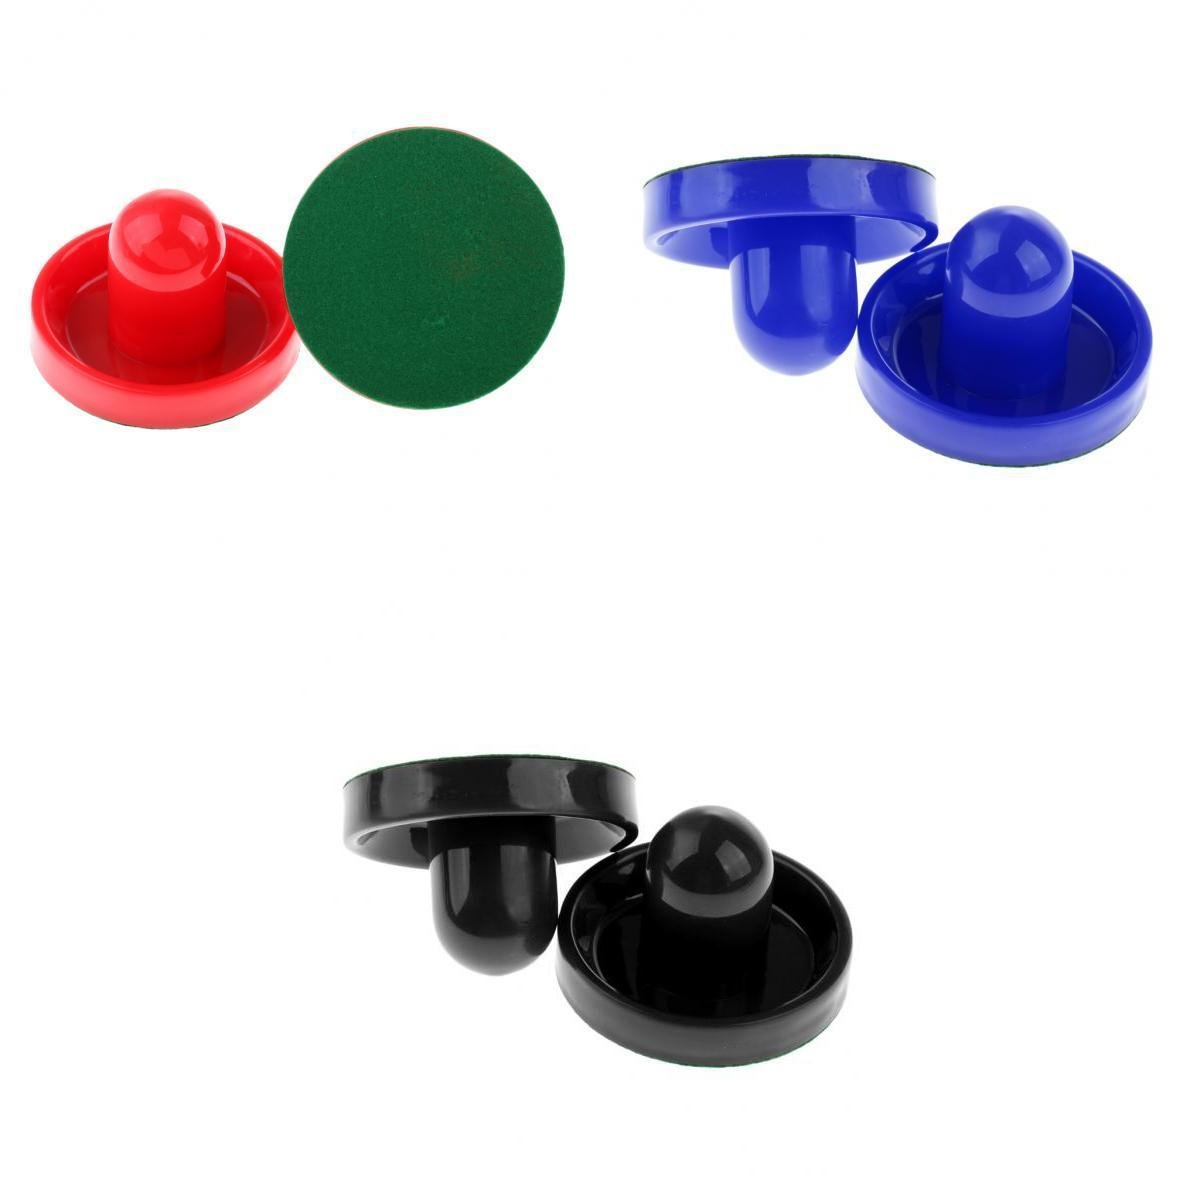 MagiDeal 6Pcs Plastic Air Hockey Pucks and Pushers Goal Handles Paddles Replacement for Game Tables, Equipment, Accessories non-brand